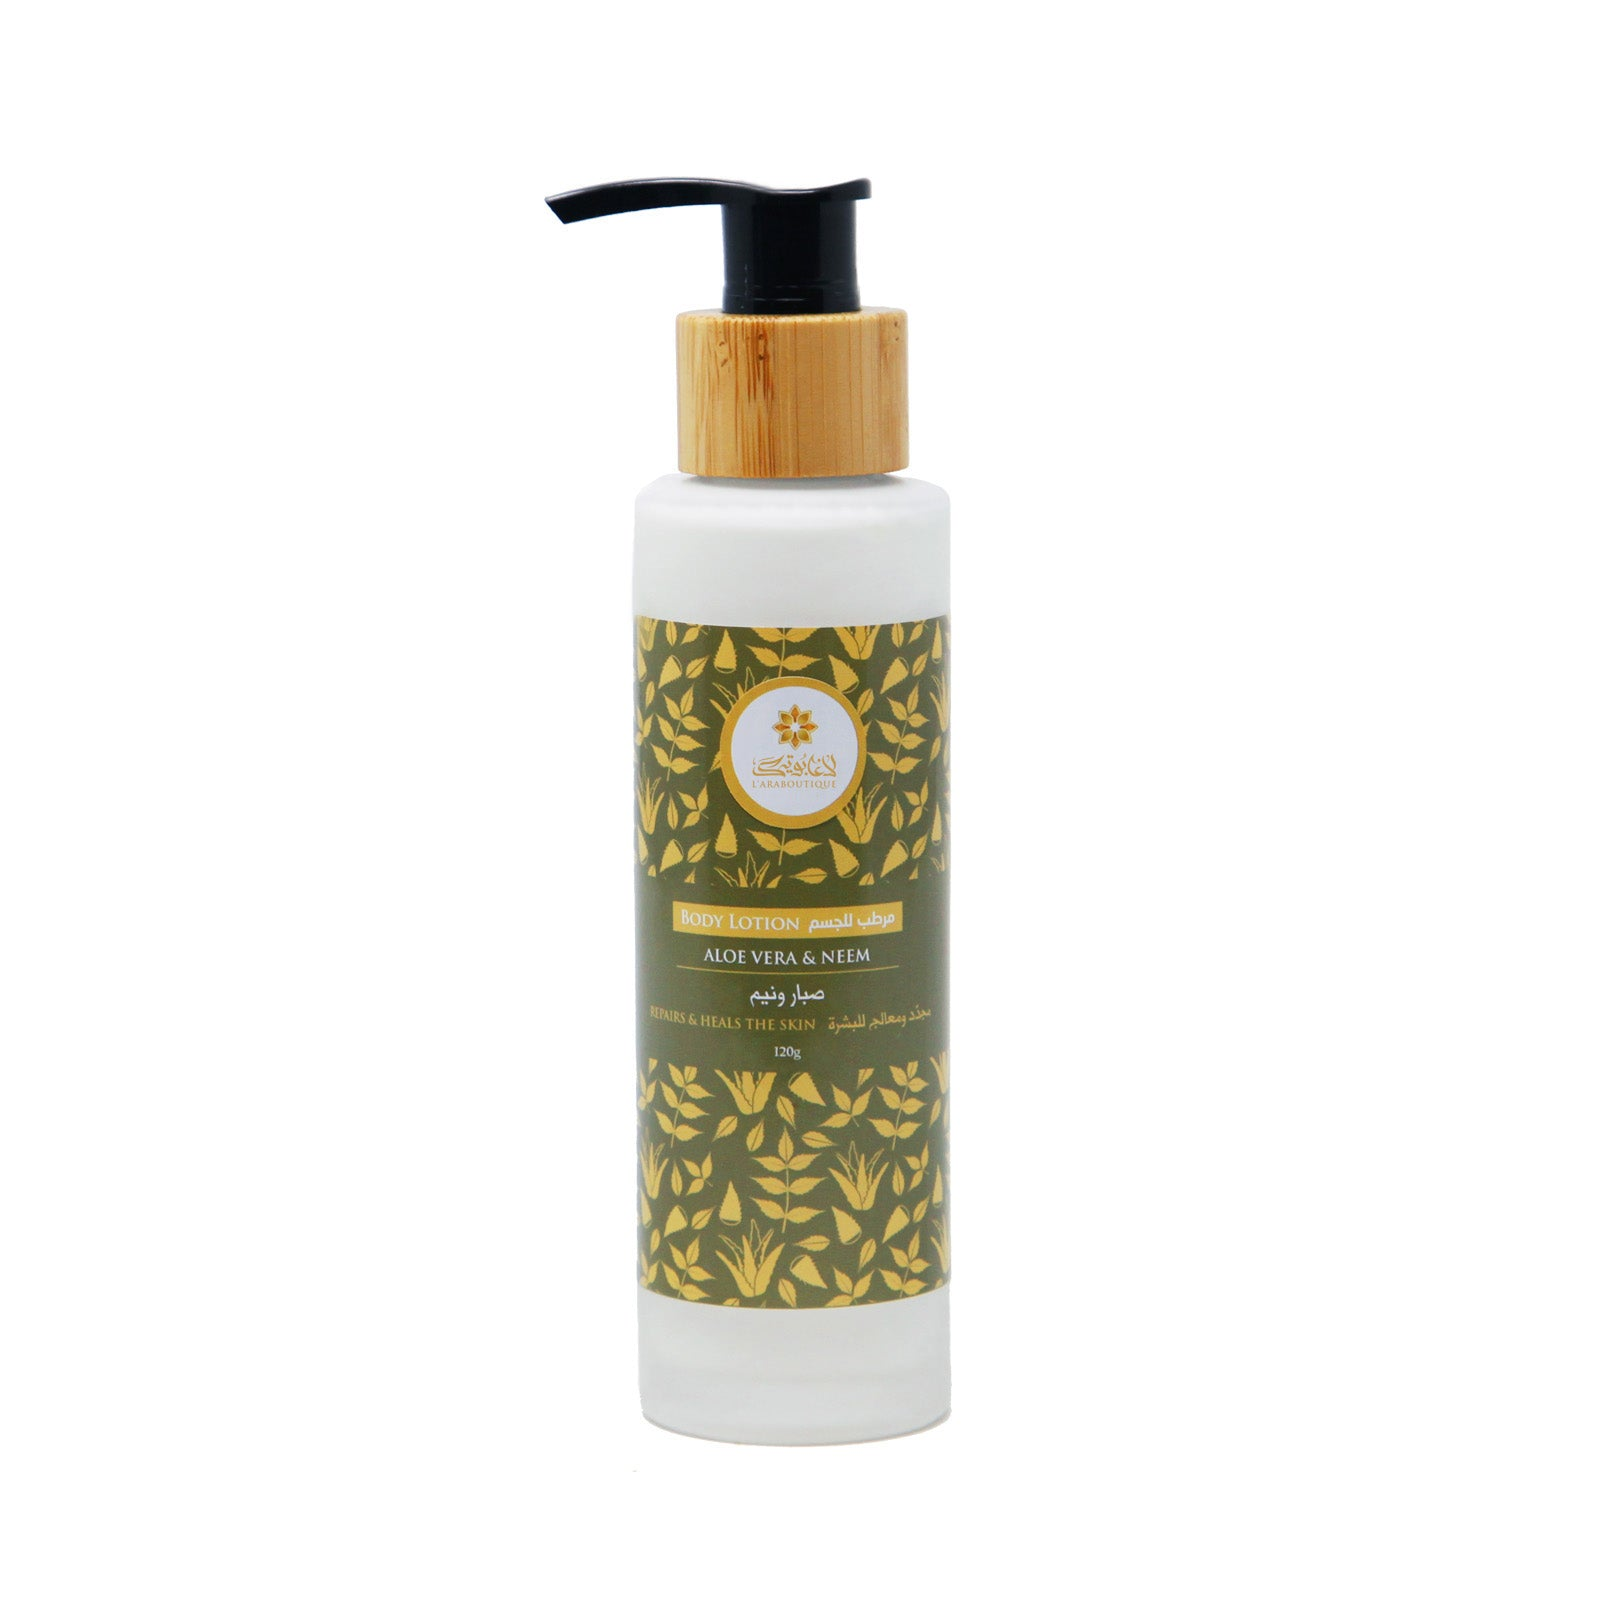 Aloe Vera and Neem Hand and Body Lotion - 120g